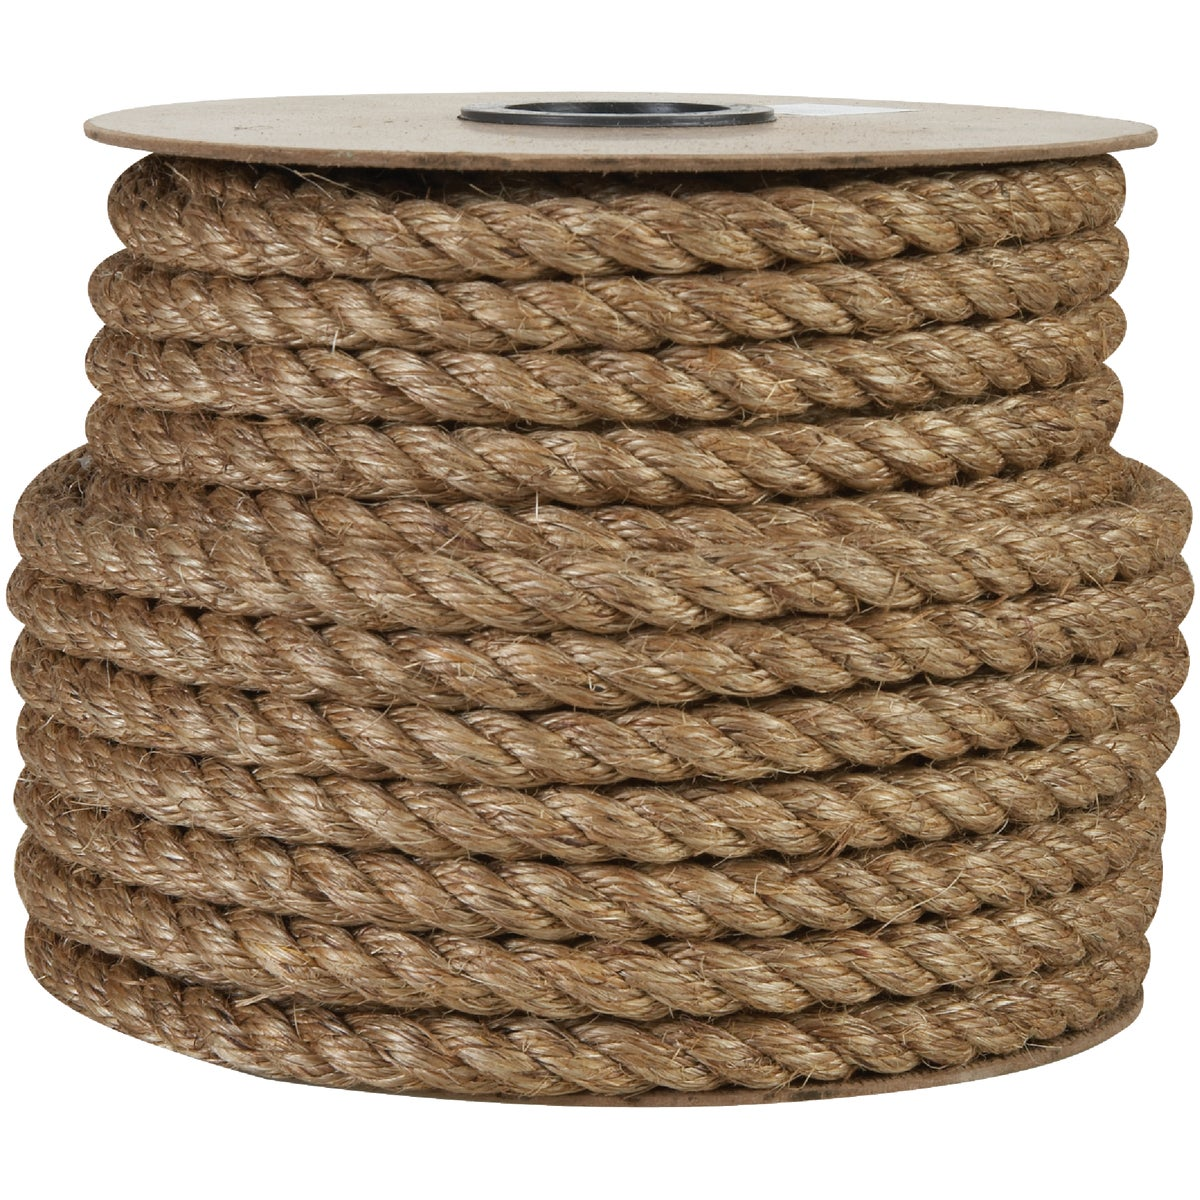 "3/4""X150' MANILA ROPE - 705419 by Do it Best"